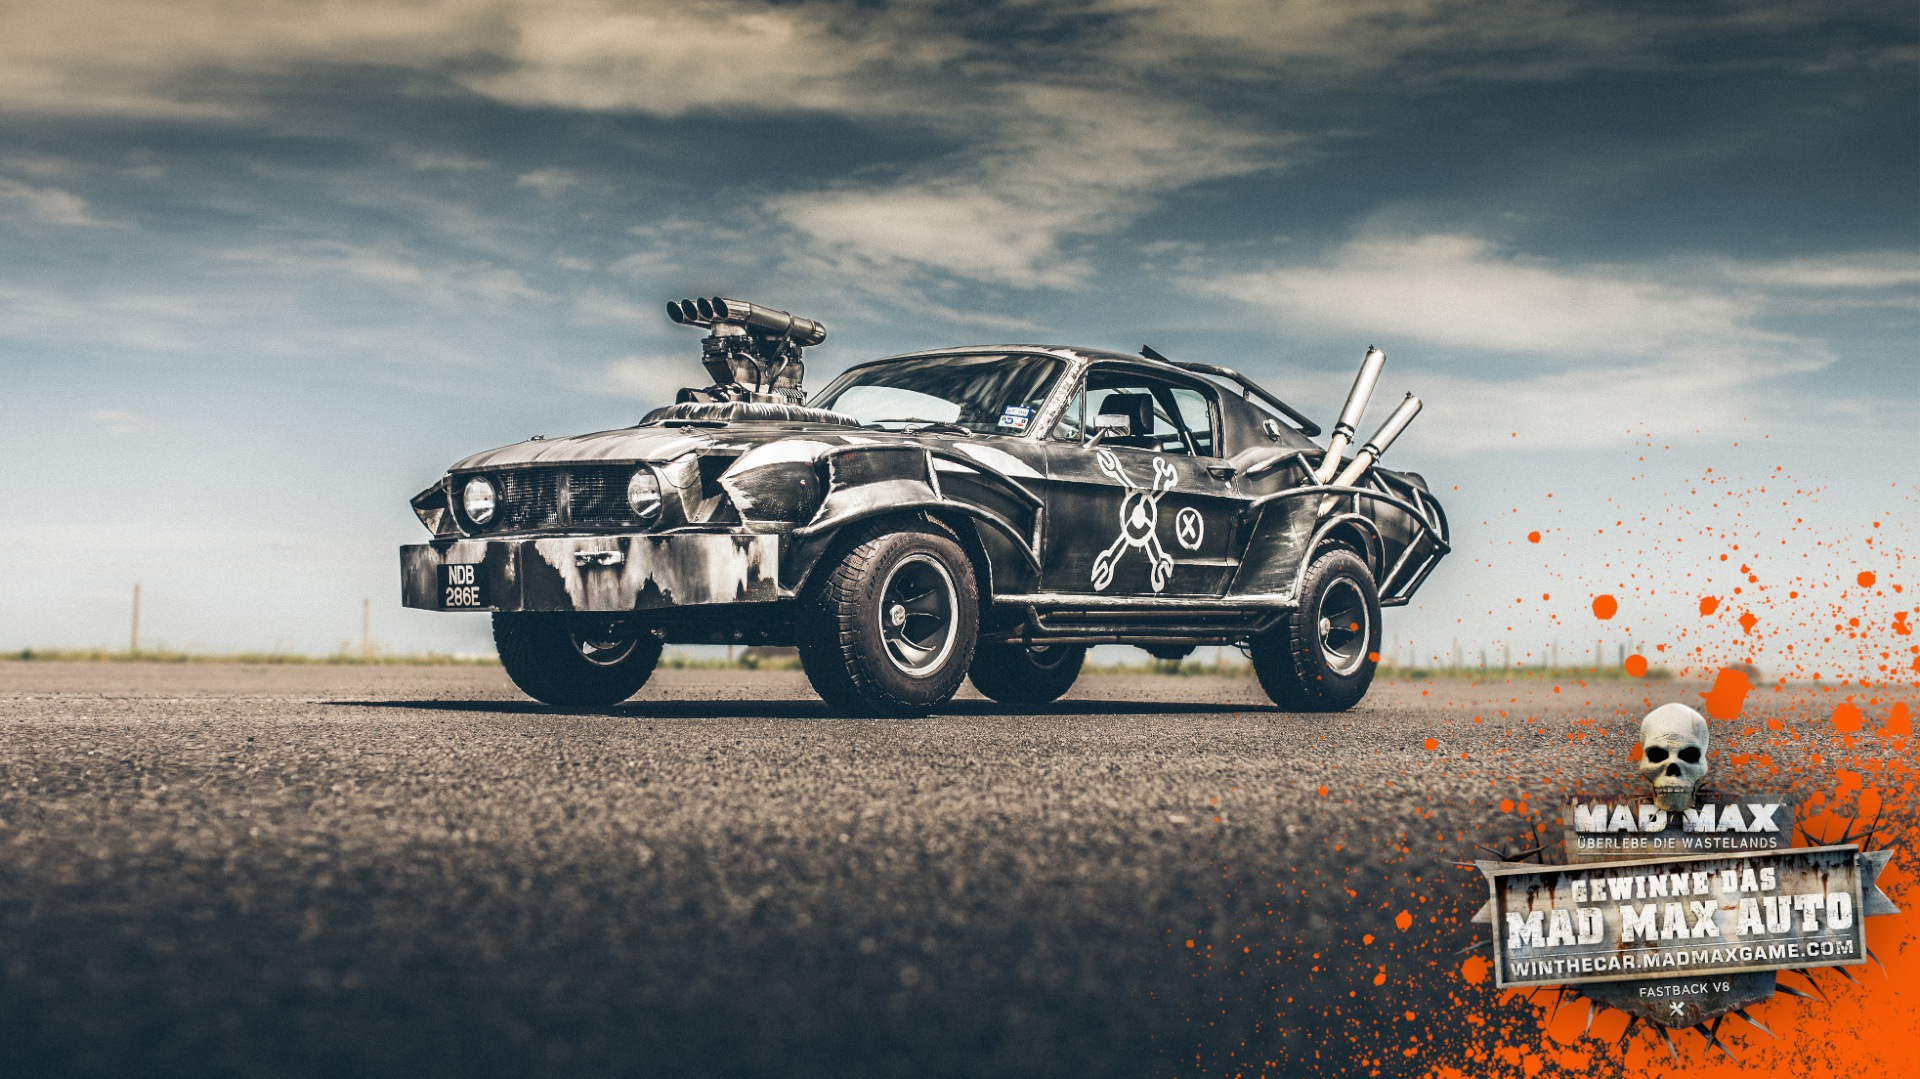 You Can Win Mad Max's Actual Magnum Opus Mustang - Xbox ...